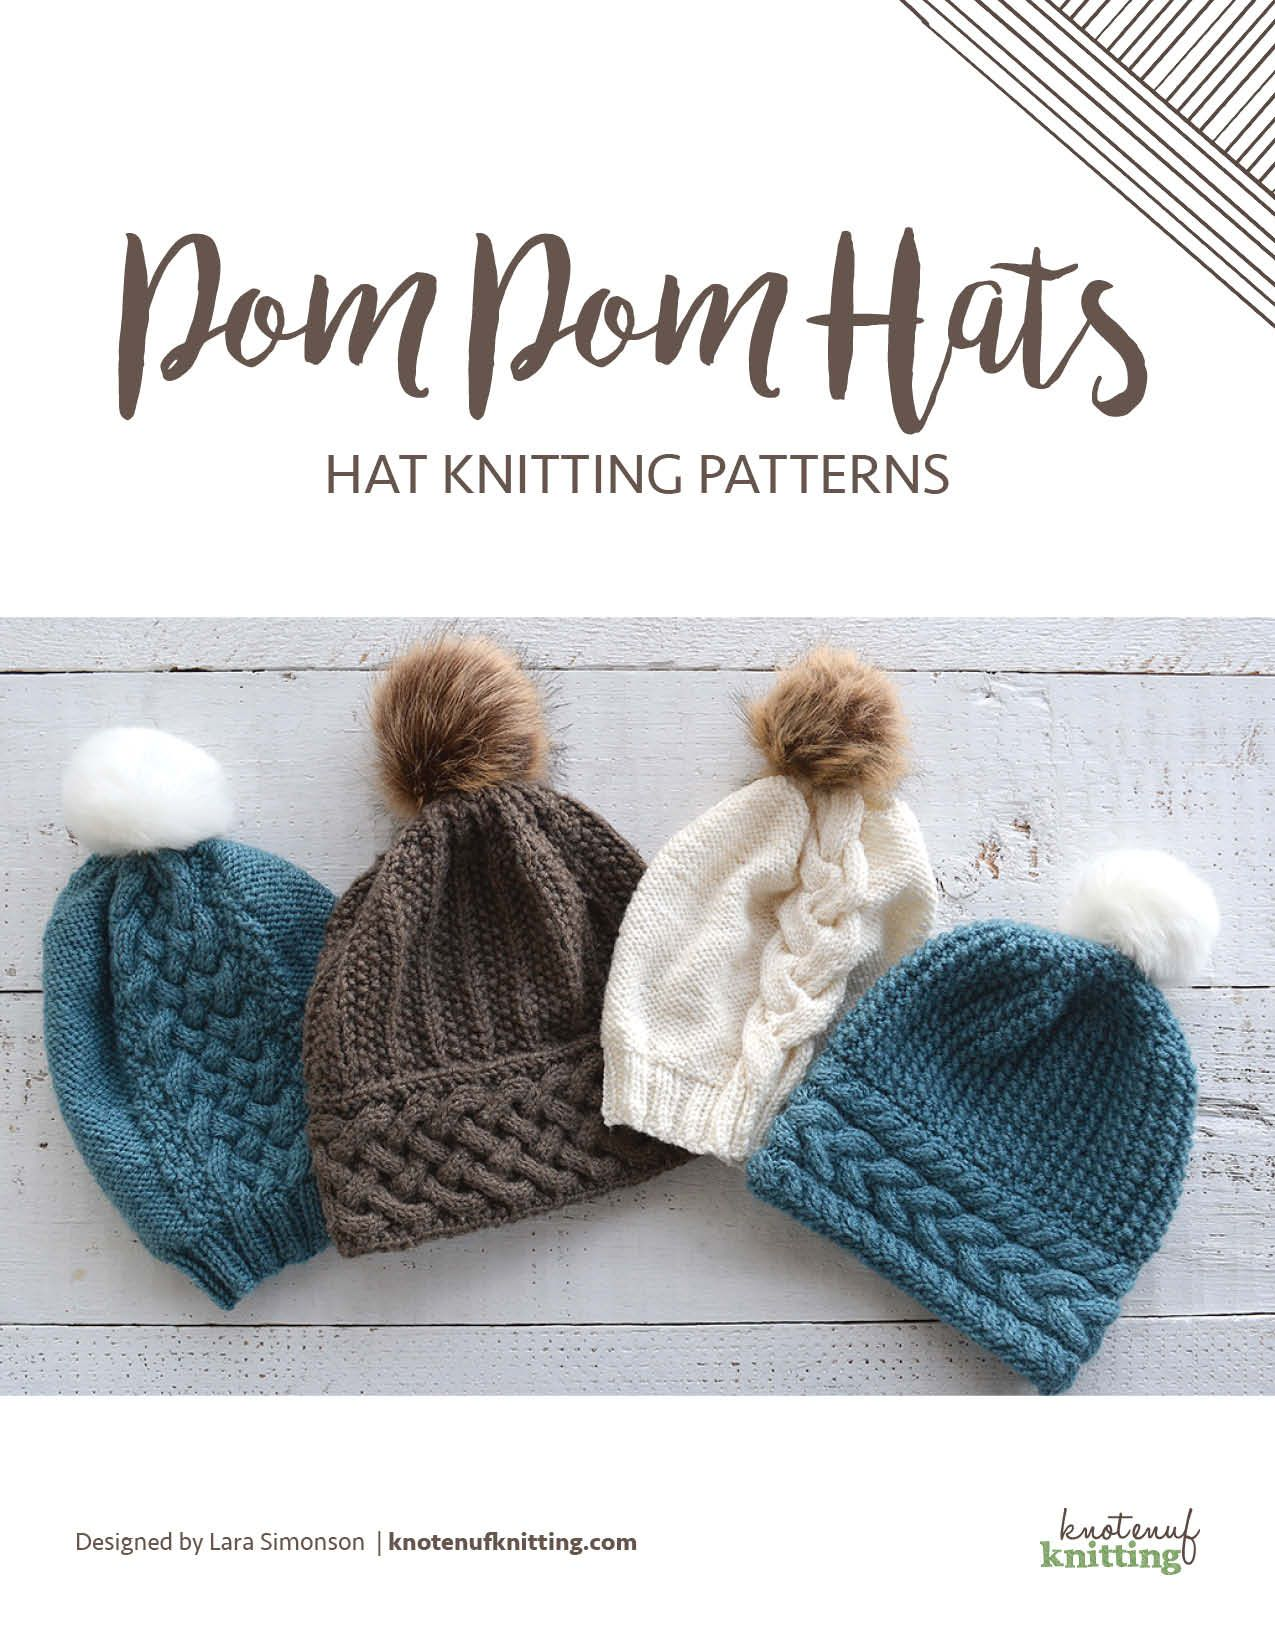 Pom Pom Hats features knitting patterns for four cute cable knit hats by  KnotEnufKnitting. Knit in the round f41f64406c8